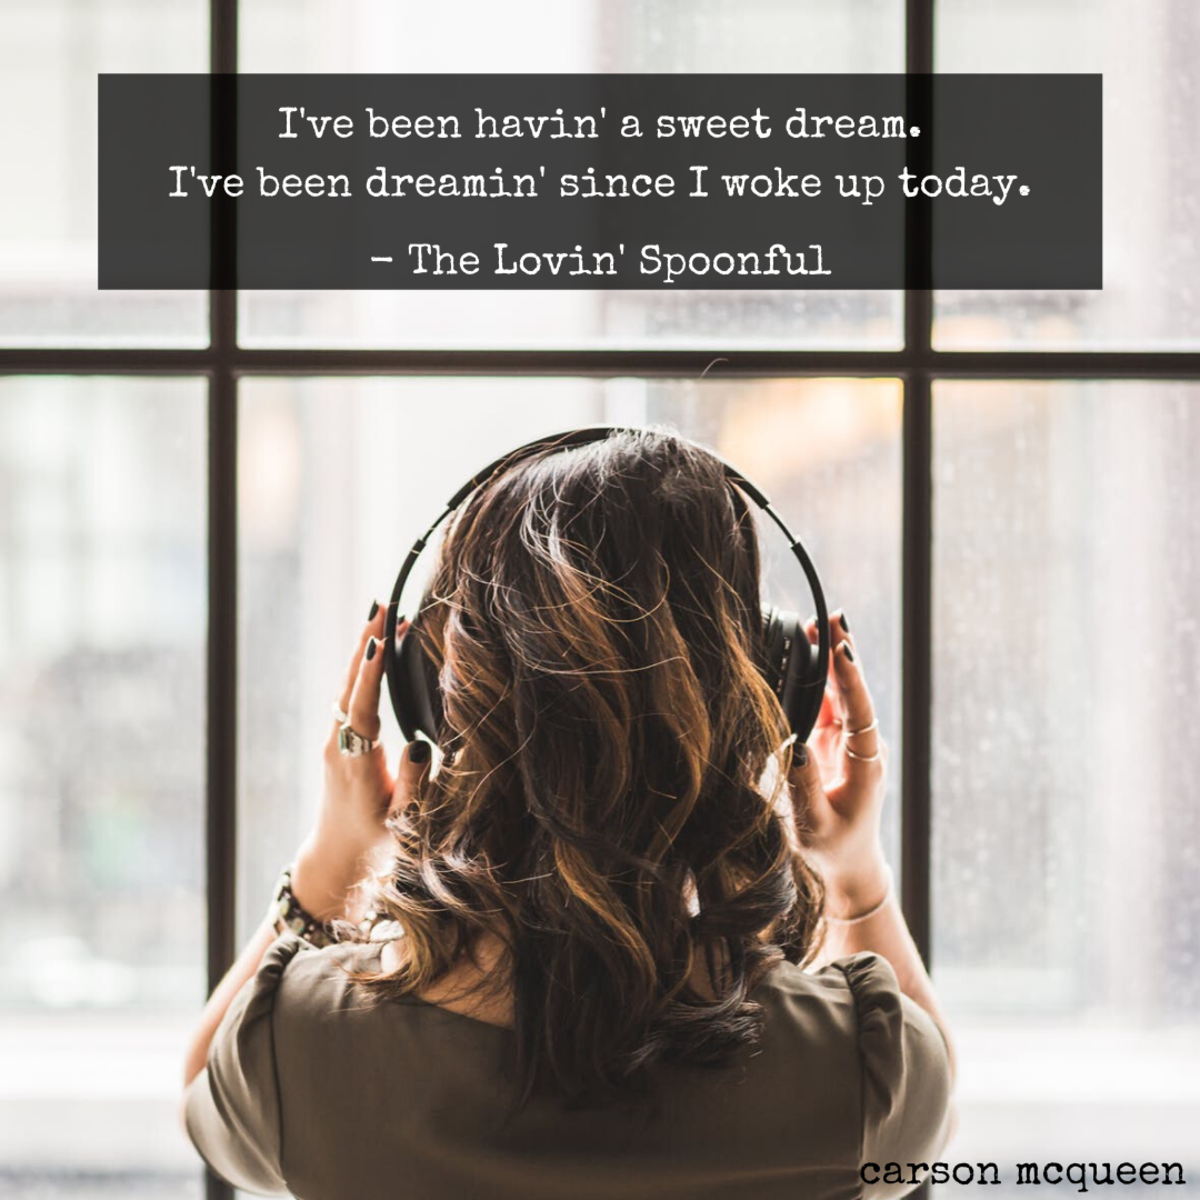 """I've been havin' a sweet dream. I've been dreamin' since I woke up today."" - The Lovin' Spoonful"